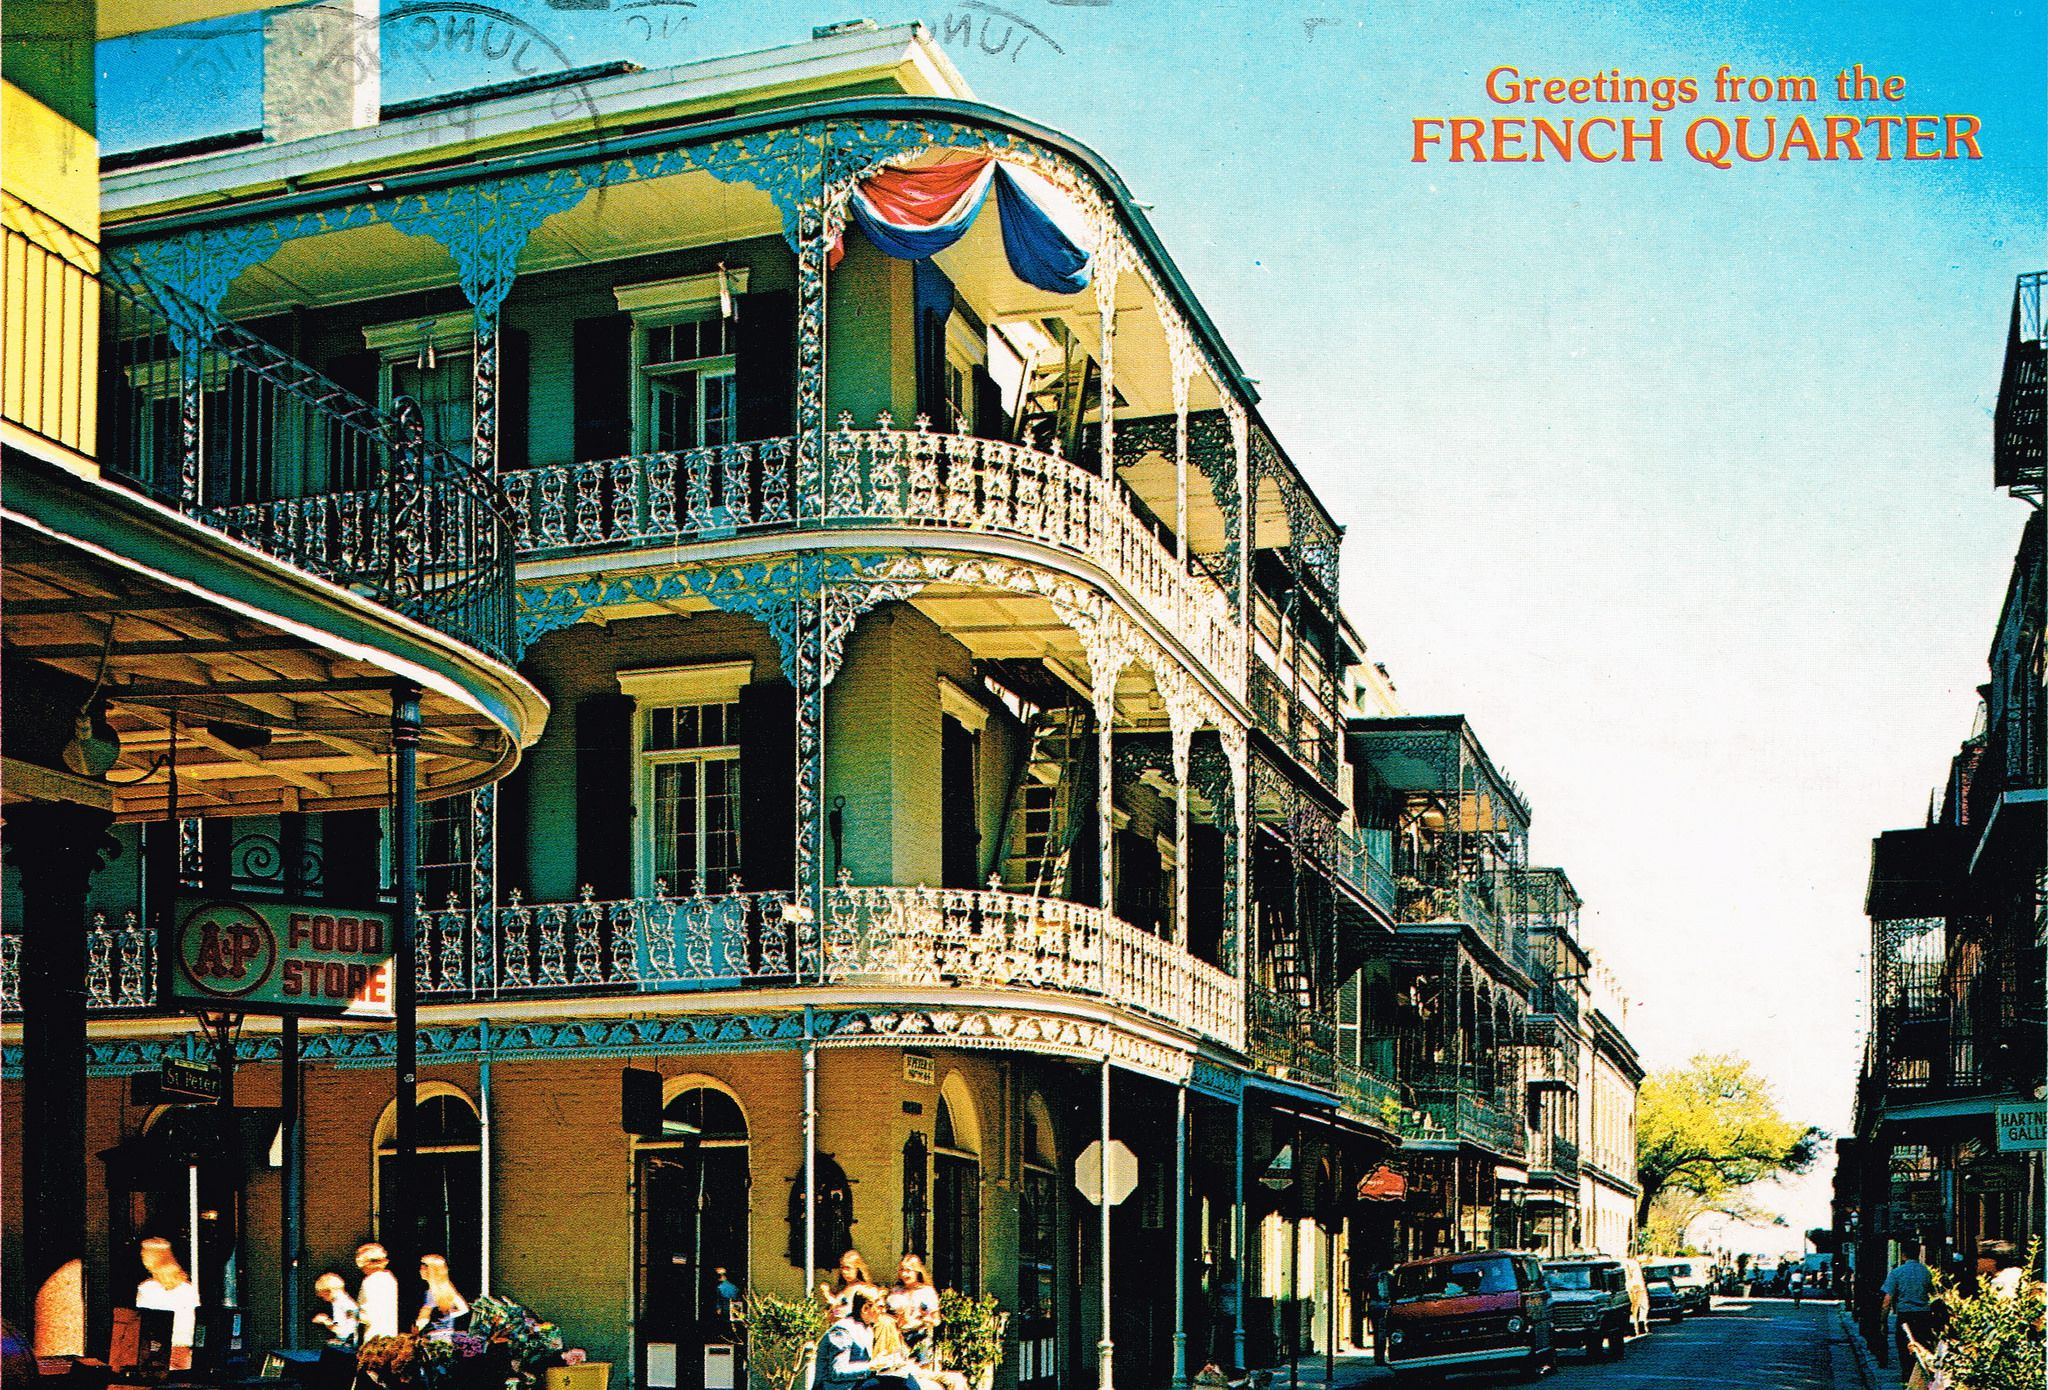 Post Cards Post Card Collection Pinterest Cards And French Quarter